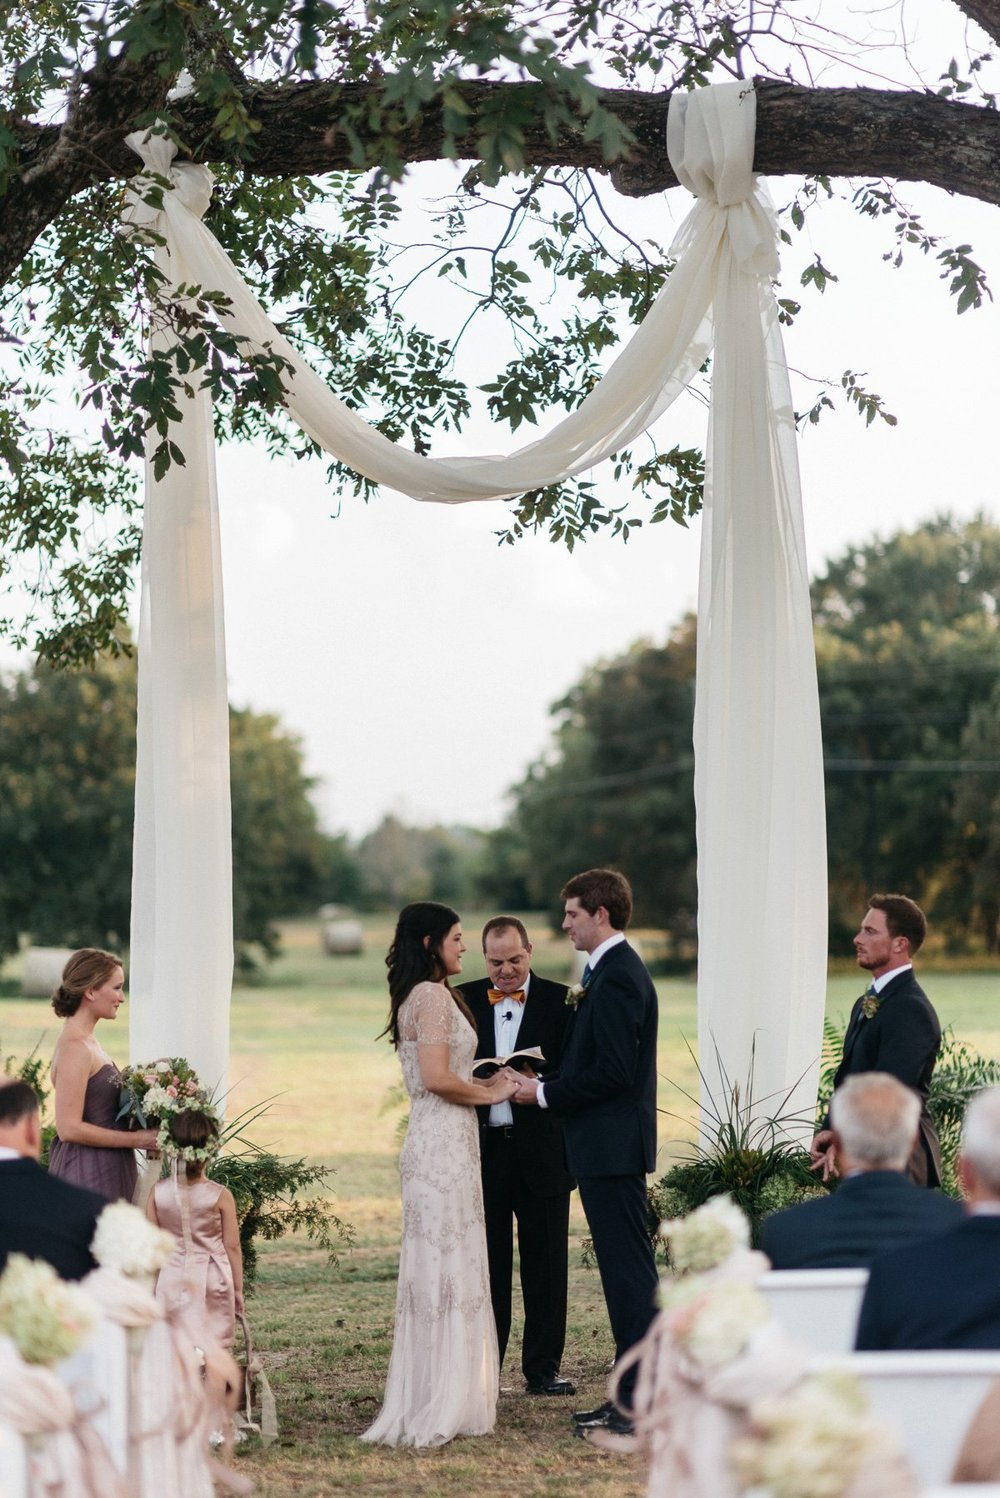 wedding day ceremony outside at southwind venue, mississippi wedding photography